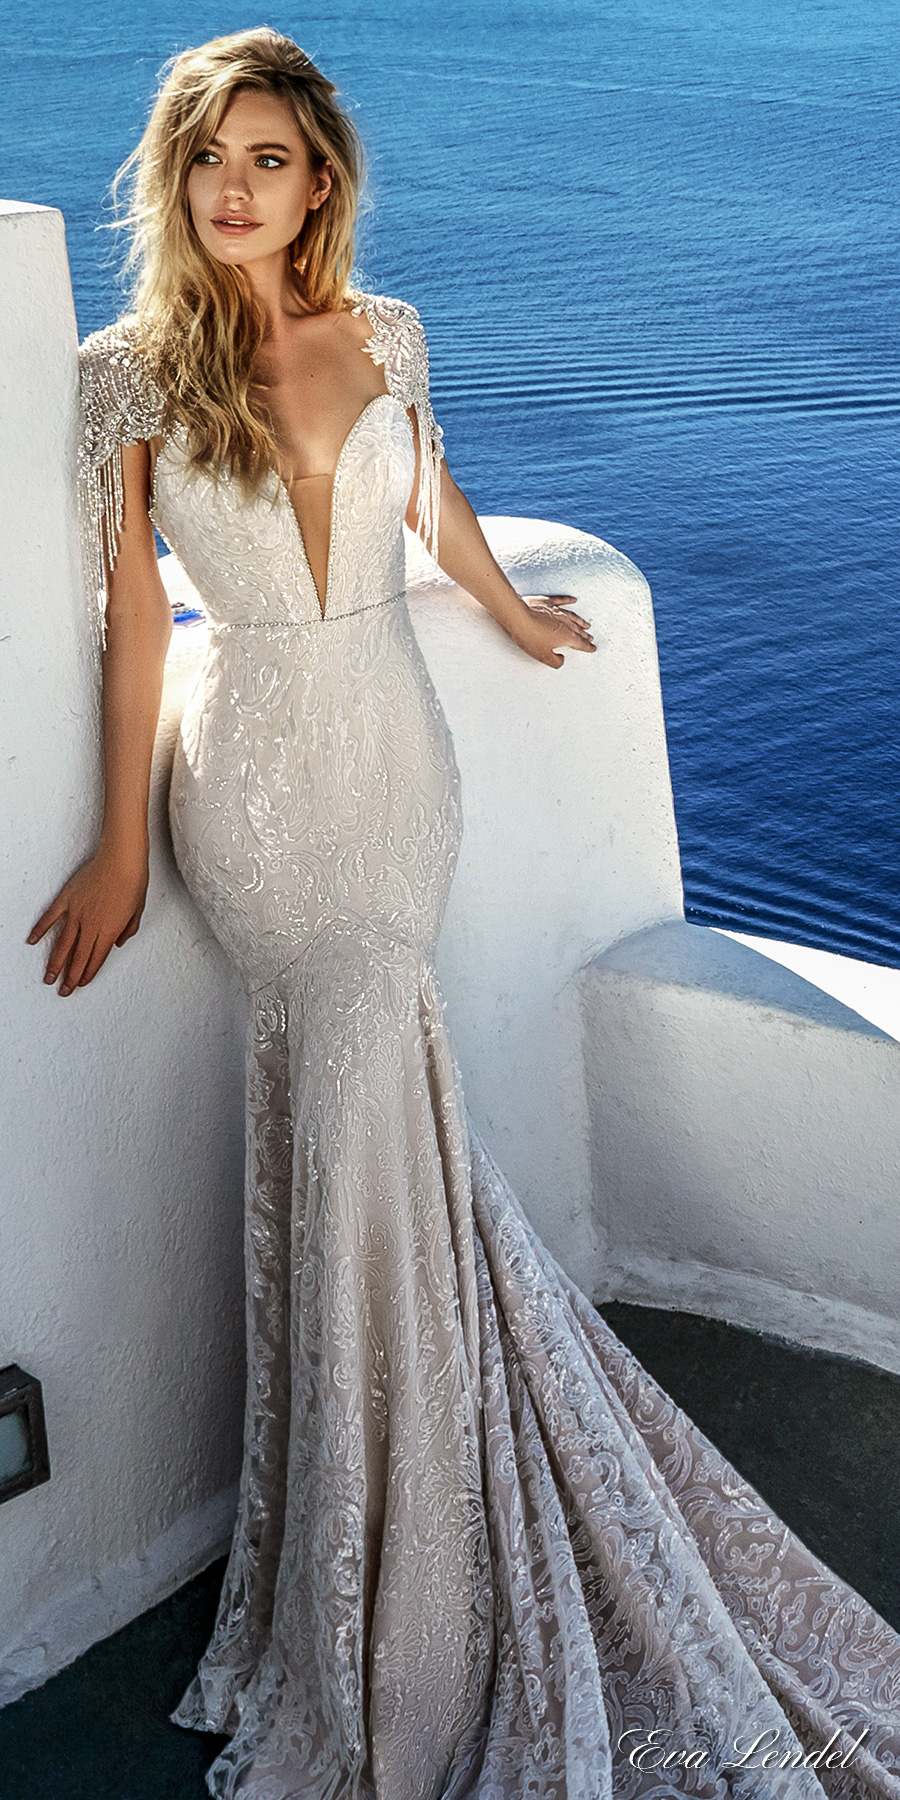 eva lendel 2017 bridal cape sleeves deep plunging sweetheart necklin full embellishment elegant sexy glamorous fit and flare sheath wedding dress keyhole back royal train (bler) mv